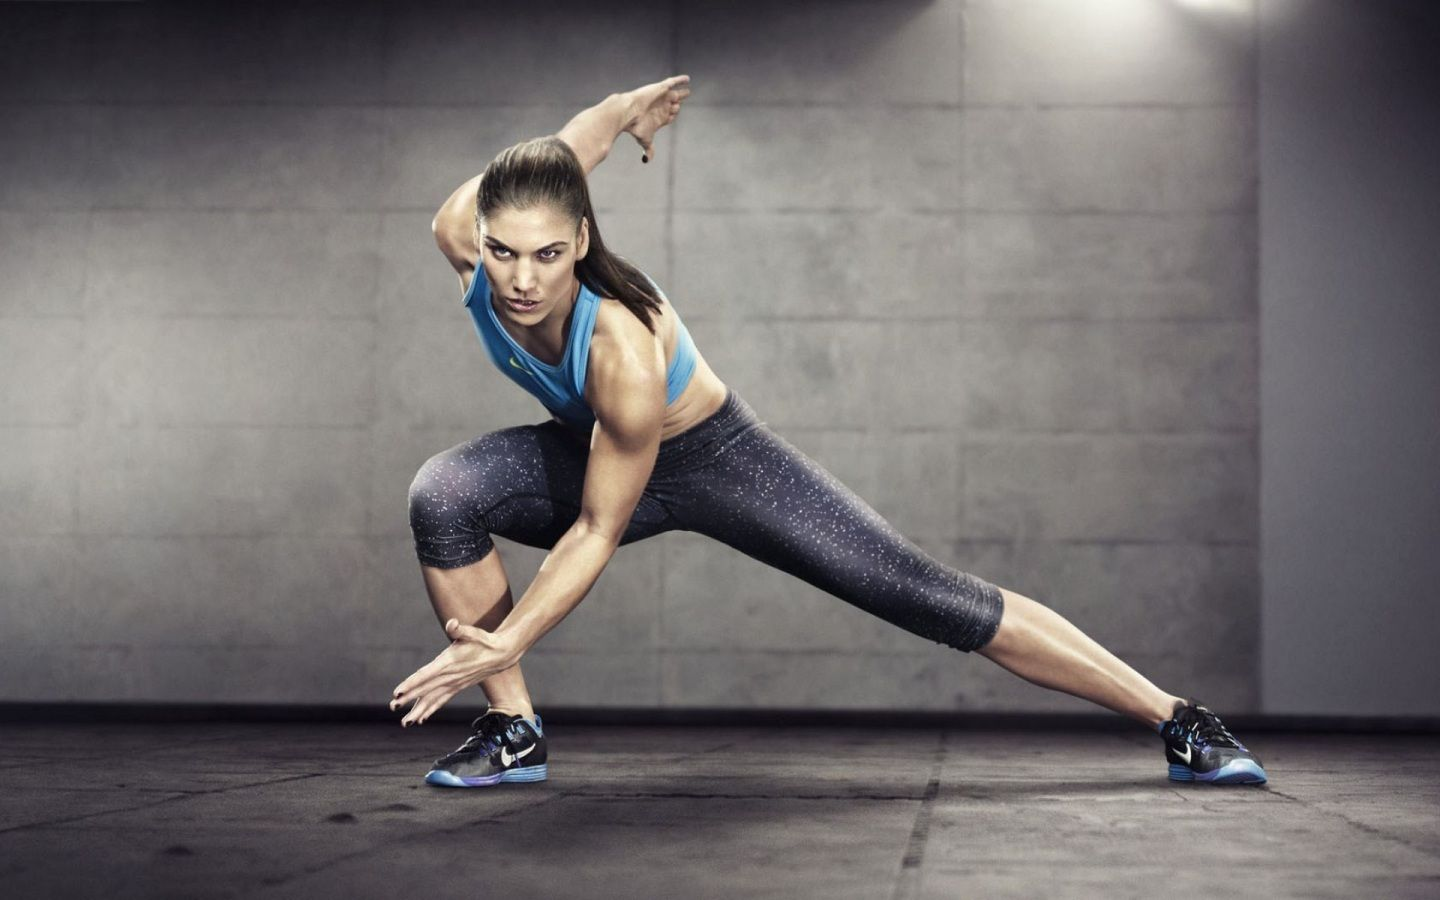 Download Fitness Wallpapers Full Hd Wallpapers Search Fitness